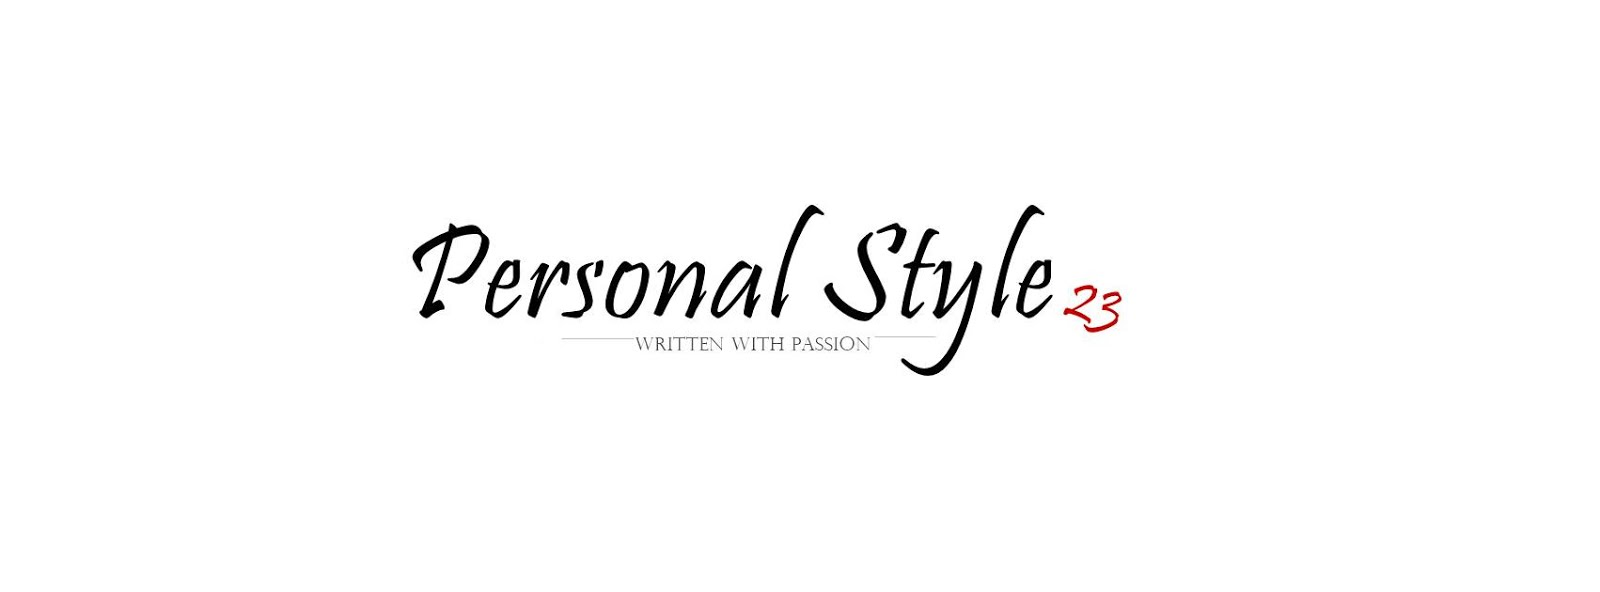 PERSONAL STYLE 23